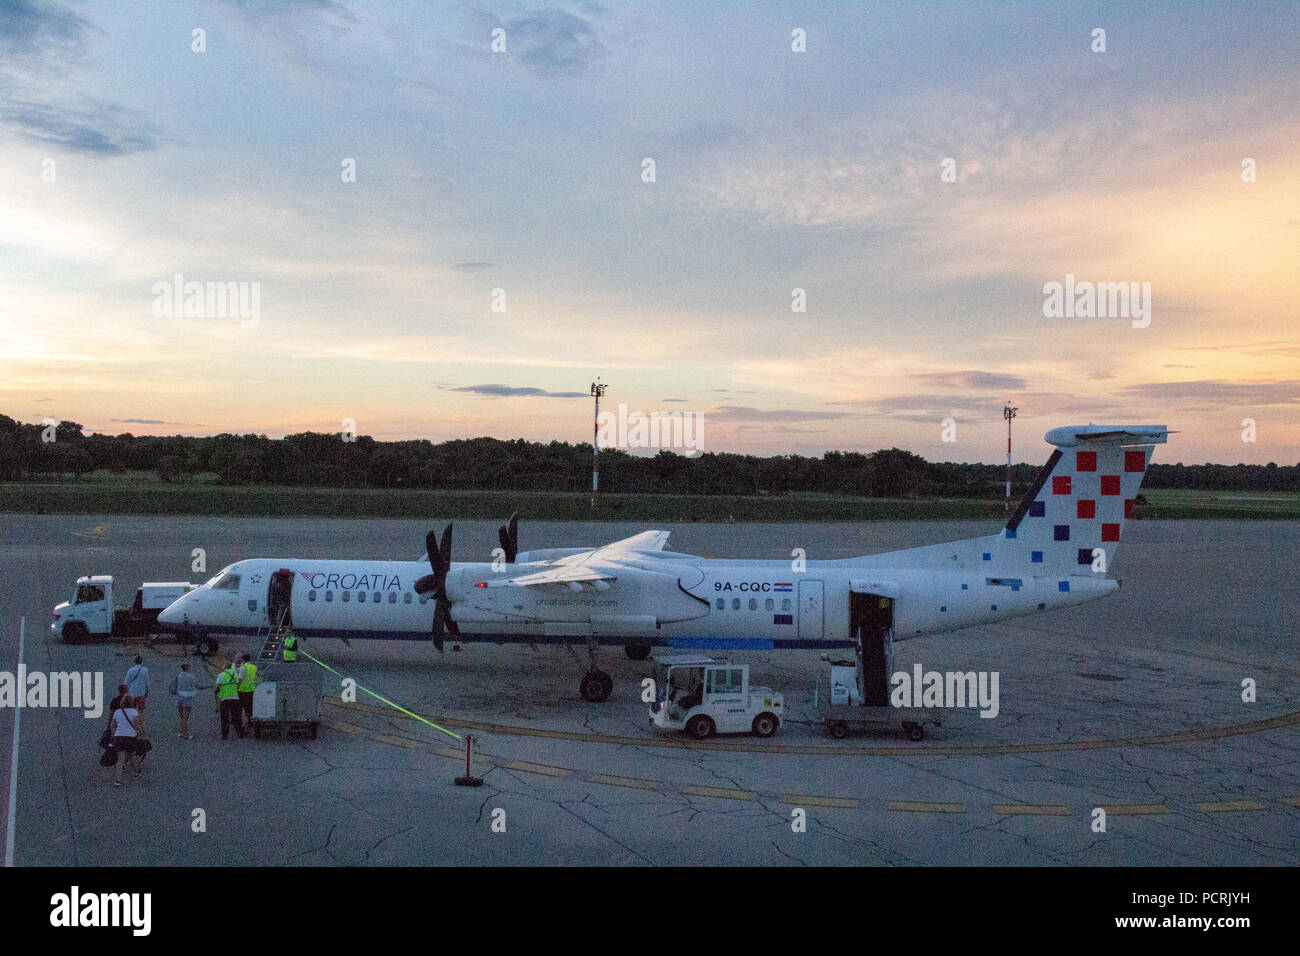 Pula, Croatia - July 23, 2018: roatia Airlines Bombardier Dash Q400 9A-CQC parked at Pula Airport - Stock Image